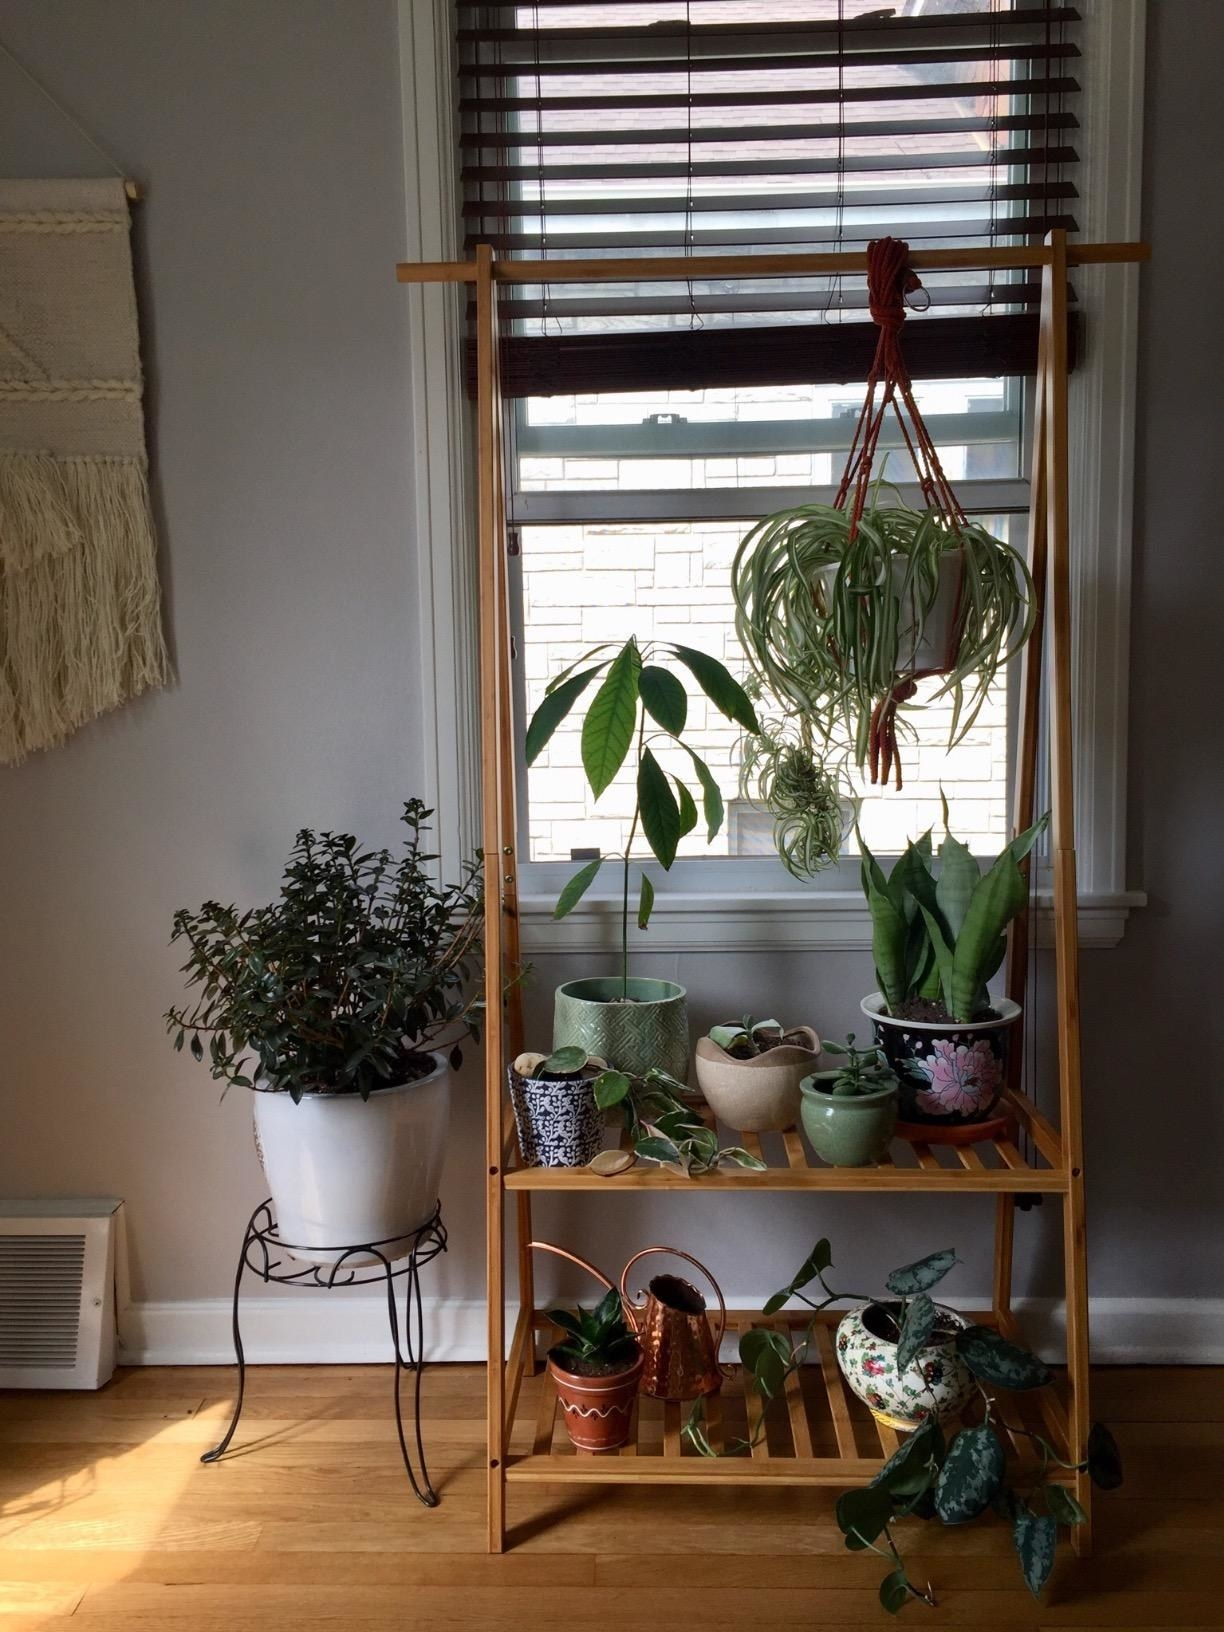 wooden rack with two shelves. there are plants on the shelves and a plants hanging from the top bar